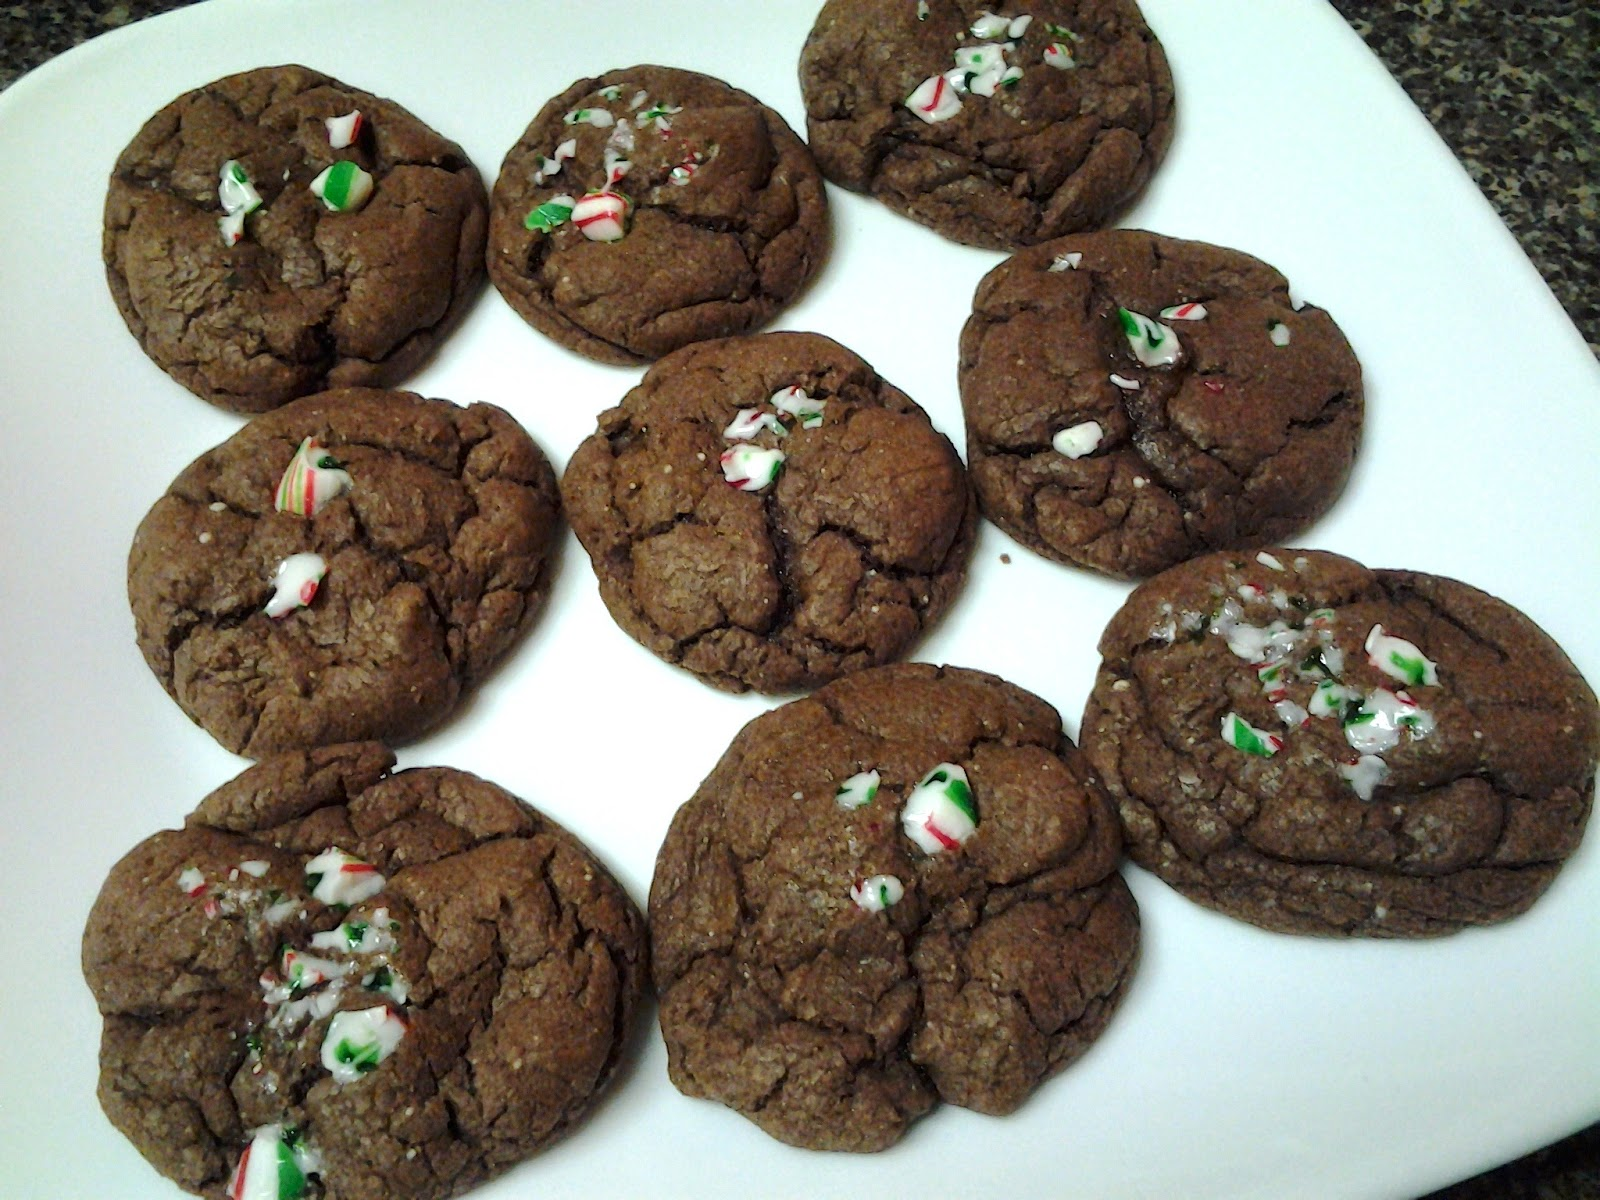 Chocolate cake mix cookies with candy canes